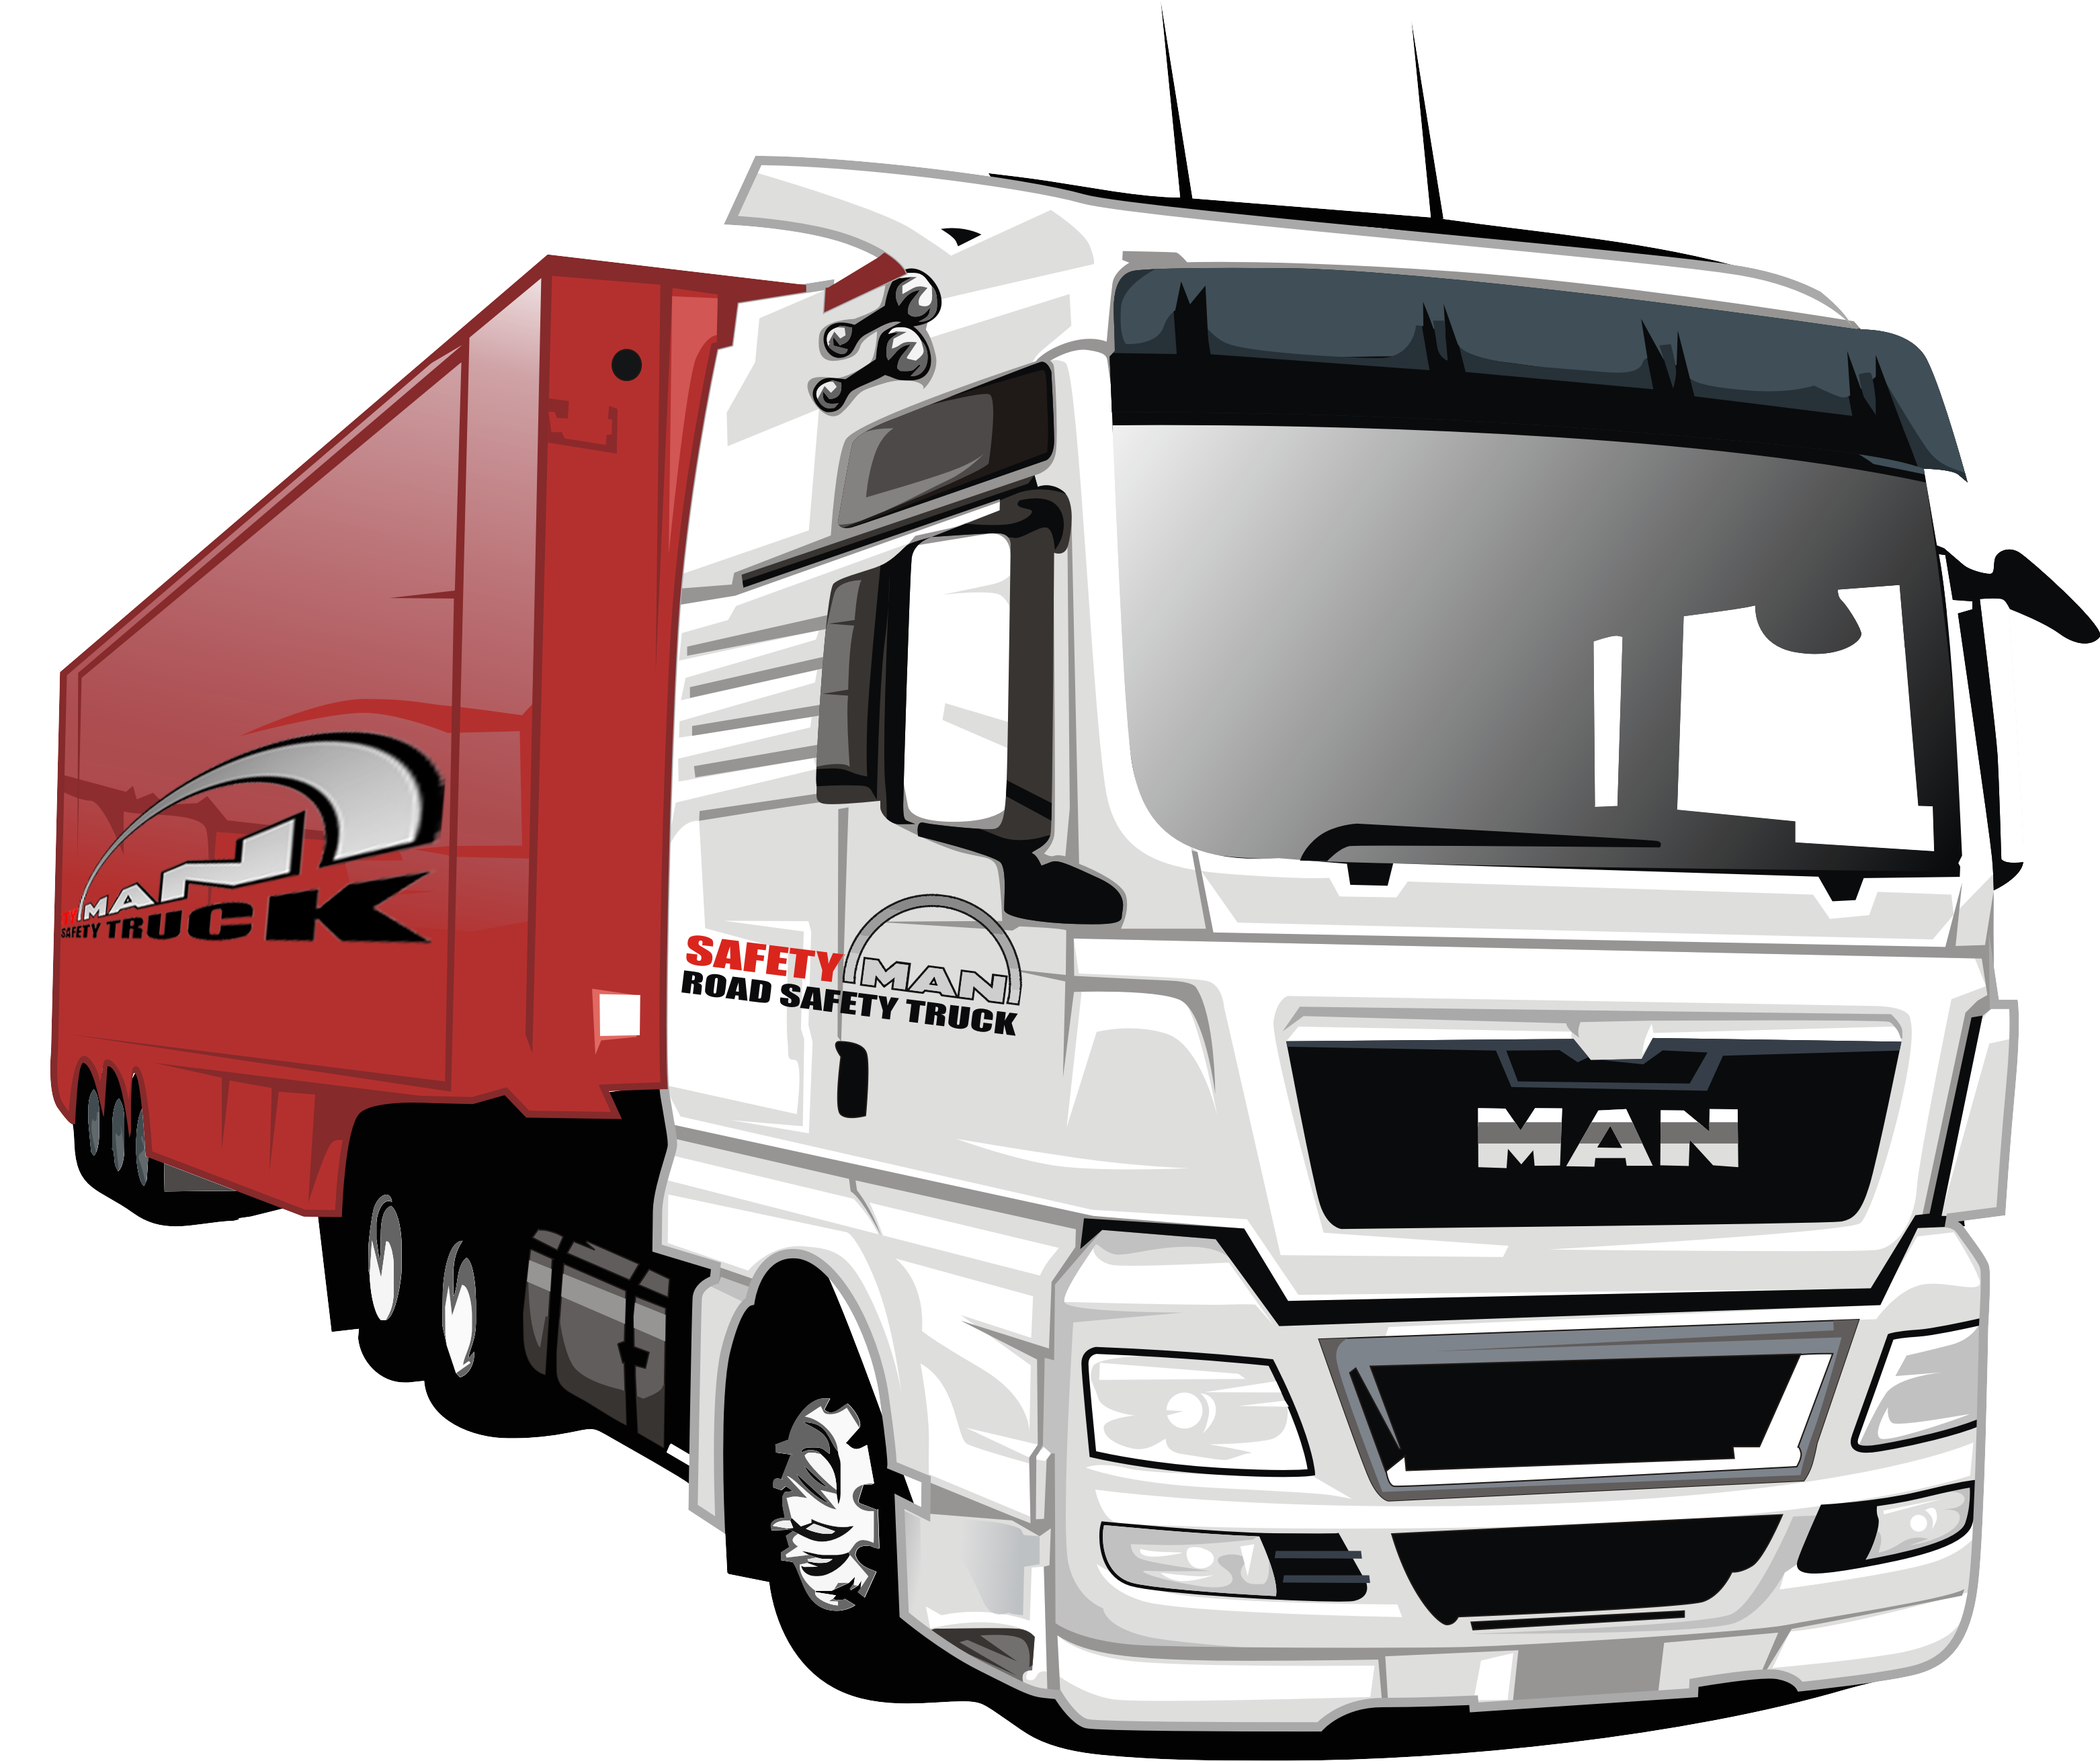 Truck vector png. Make cartoon style of